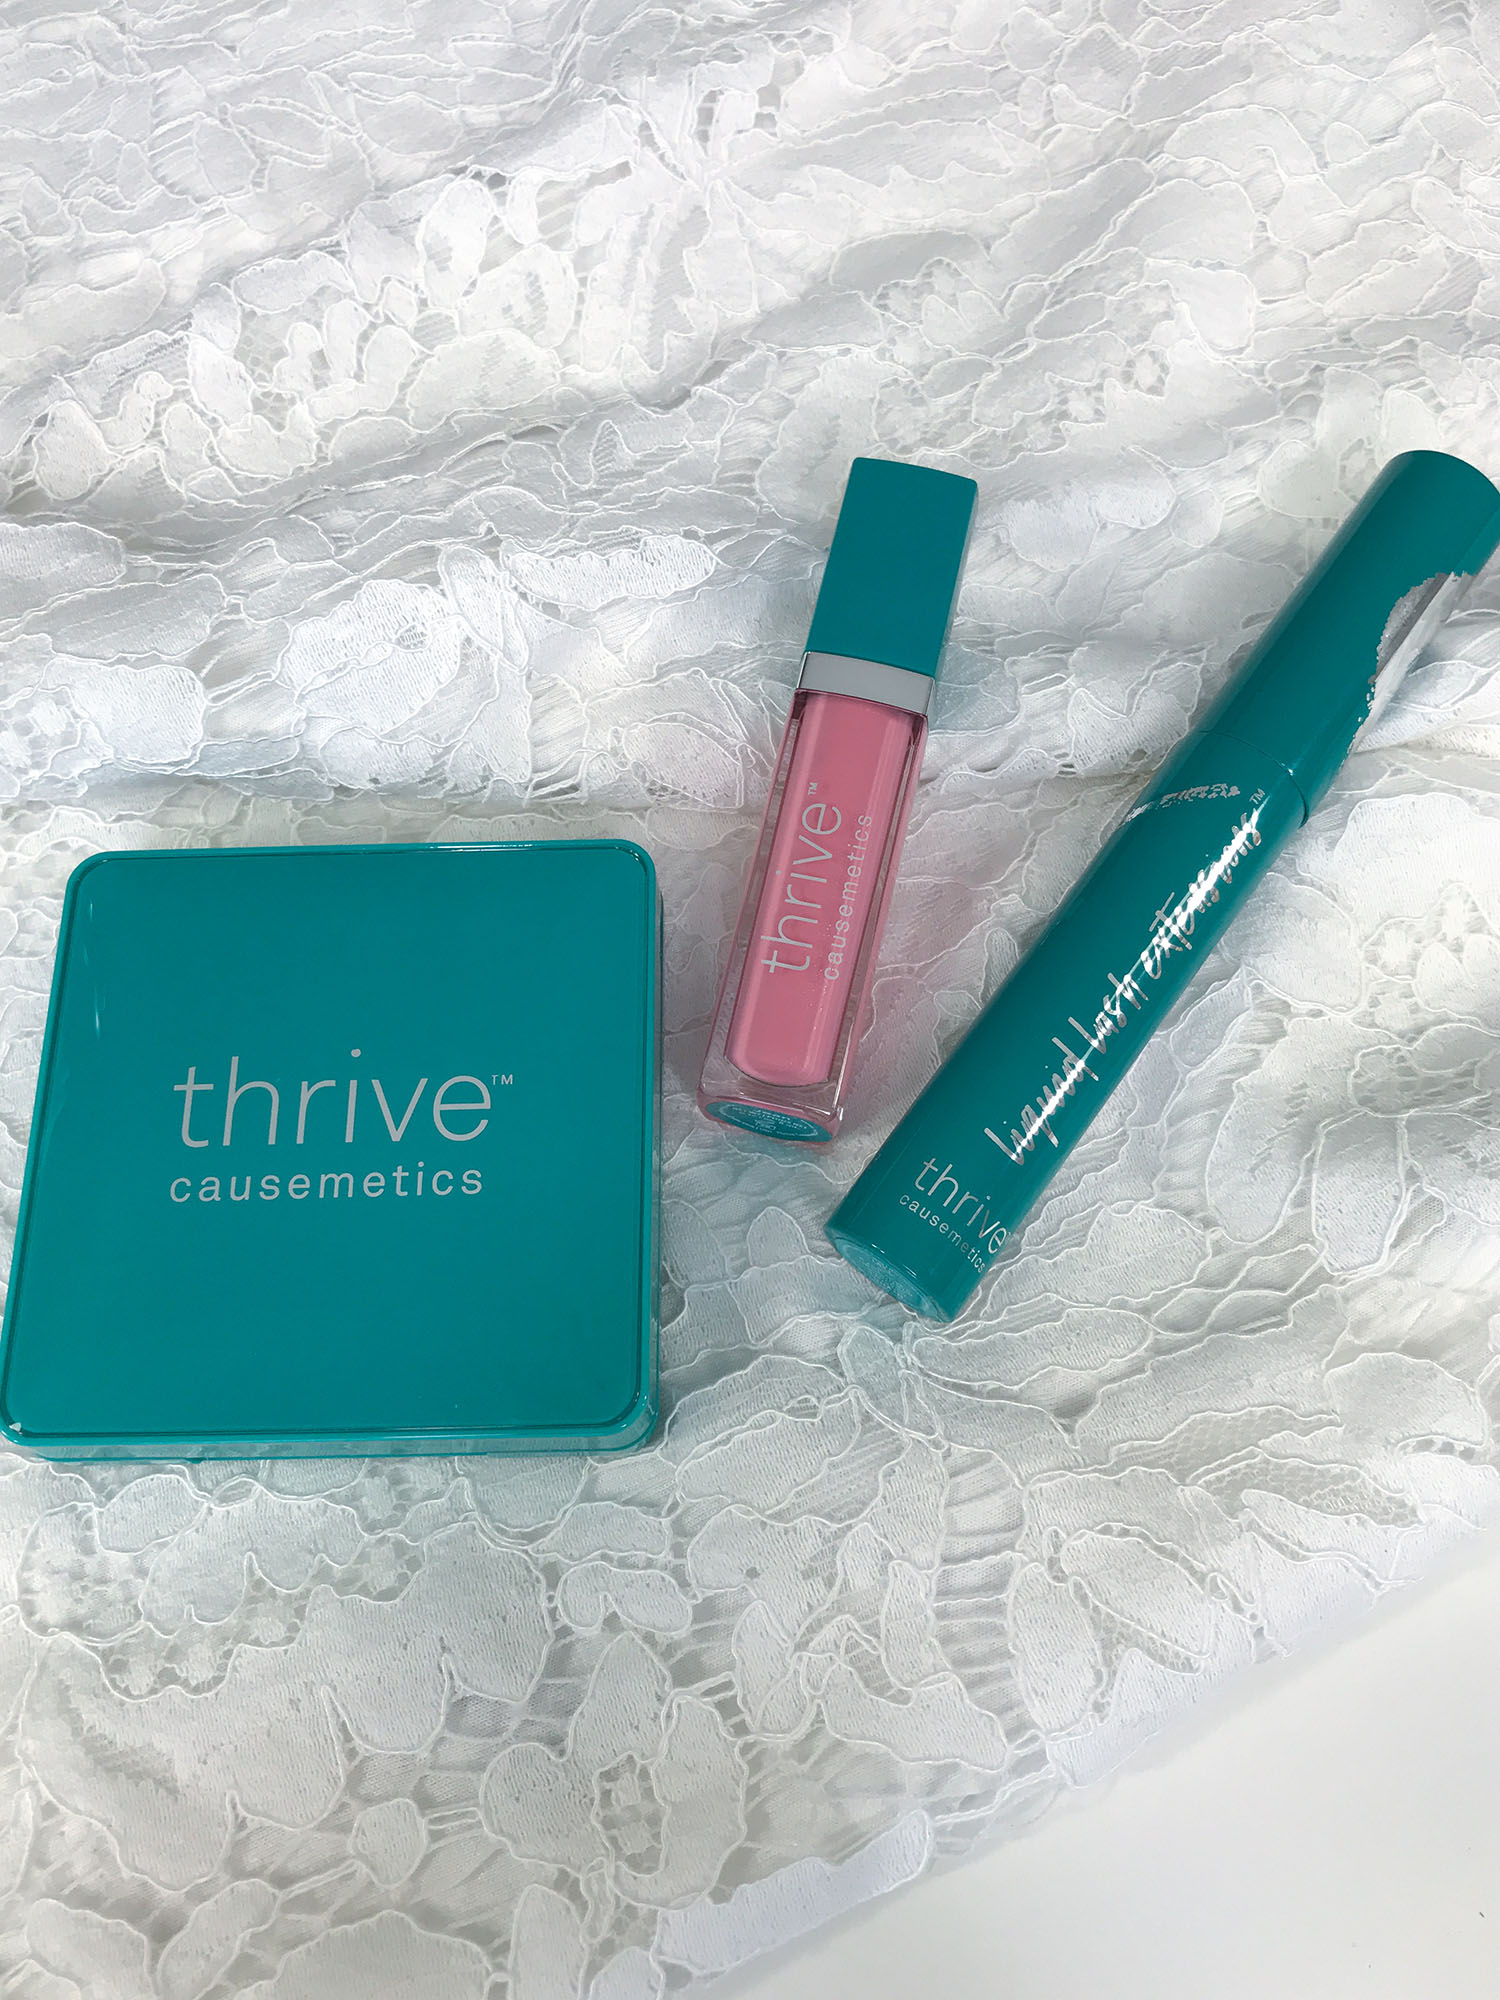 Thrive Causemetics Review and Makeup Look | Brighter Darling Beauty Blogger